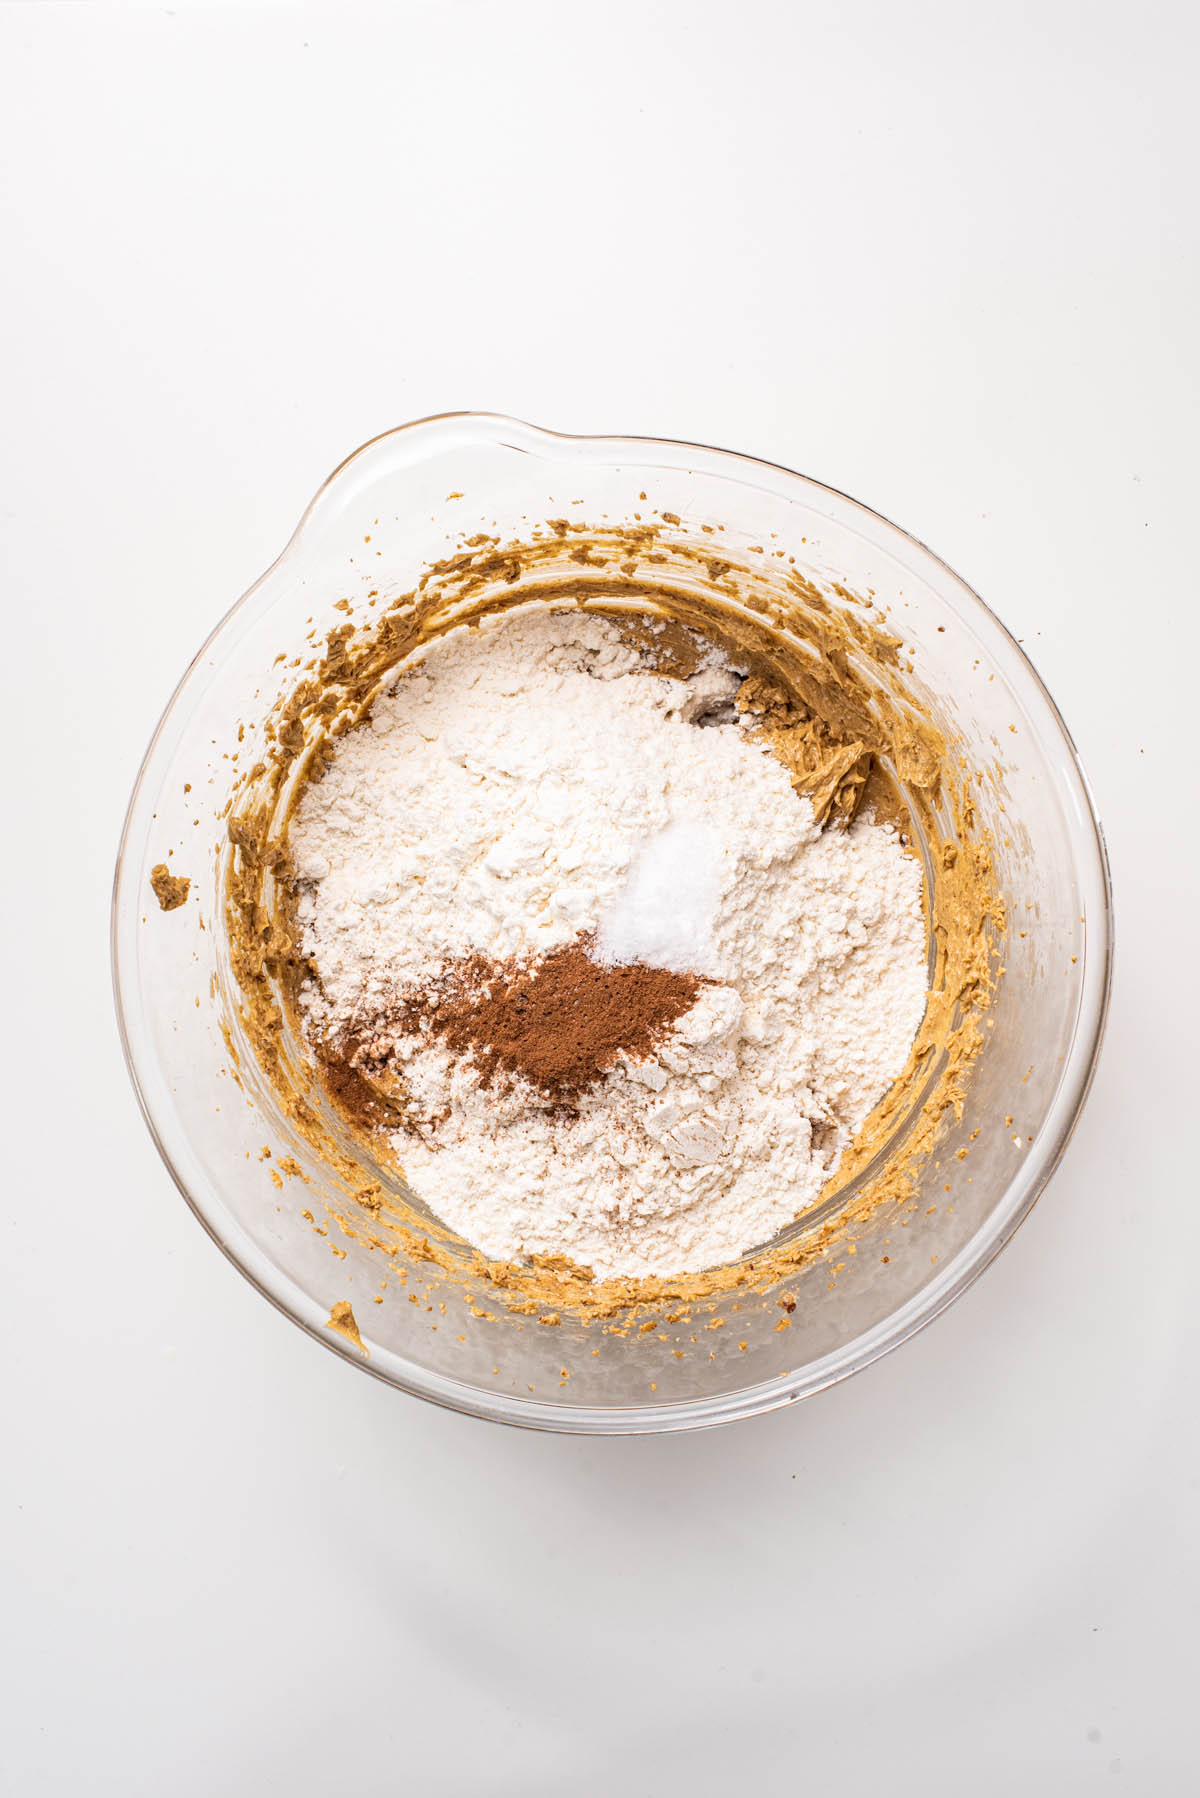 Dry ingredients added to the mixing bowl.